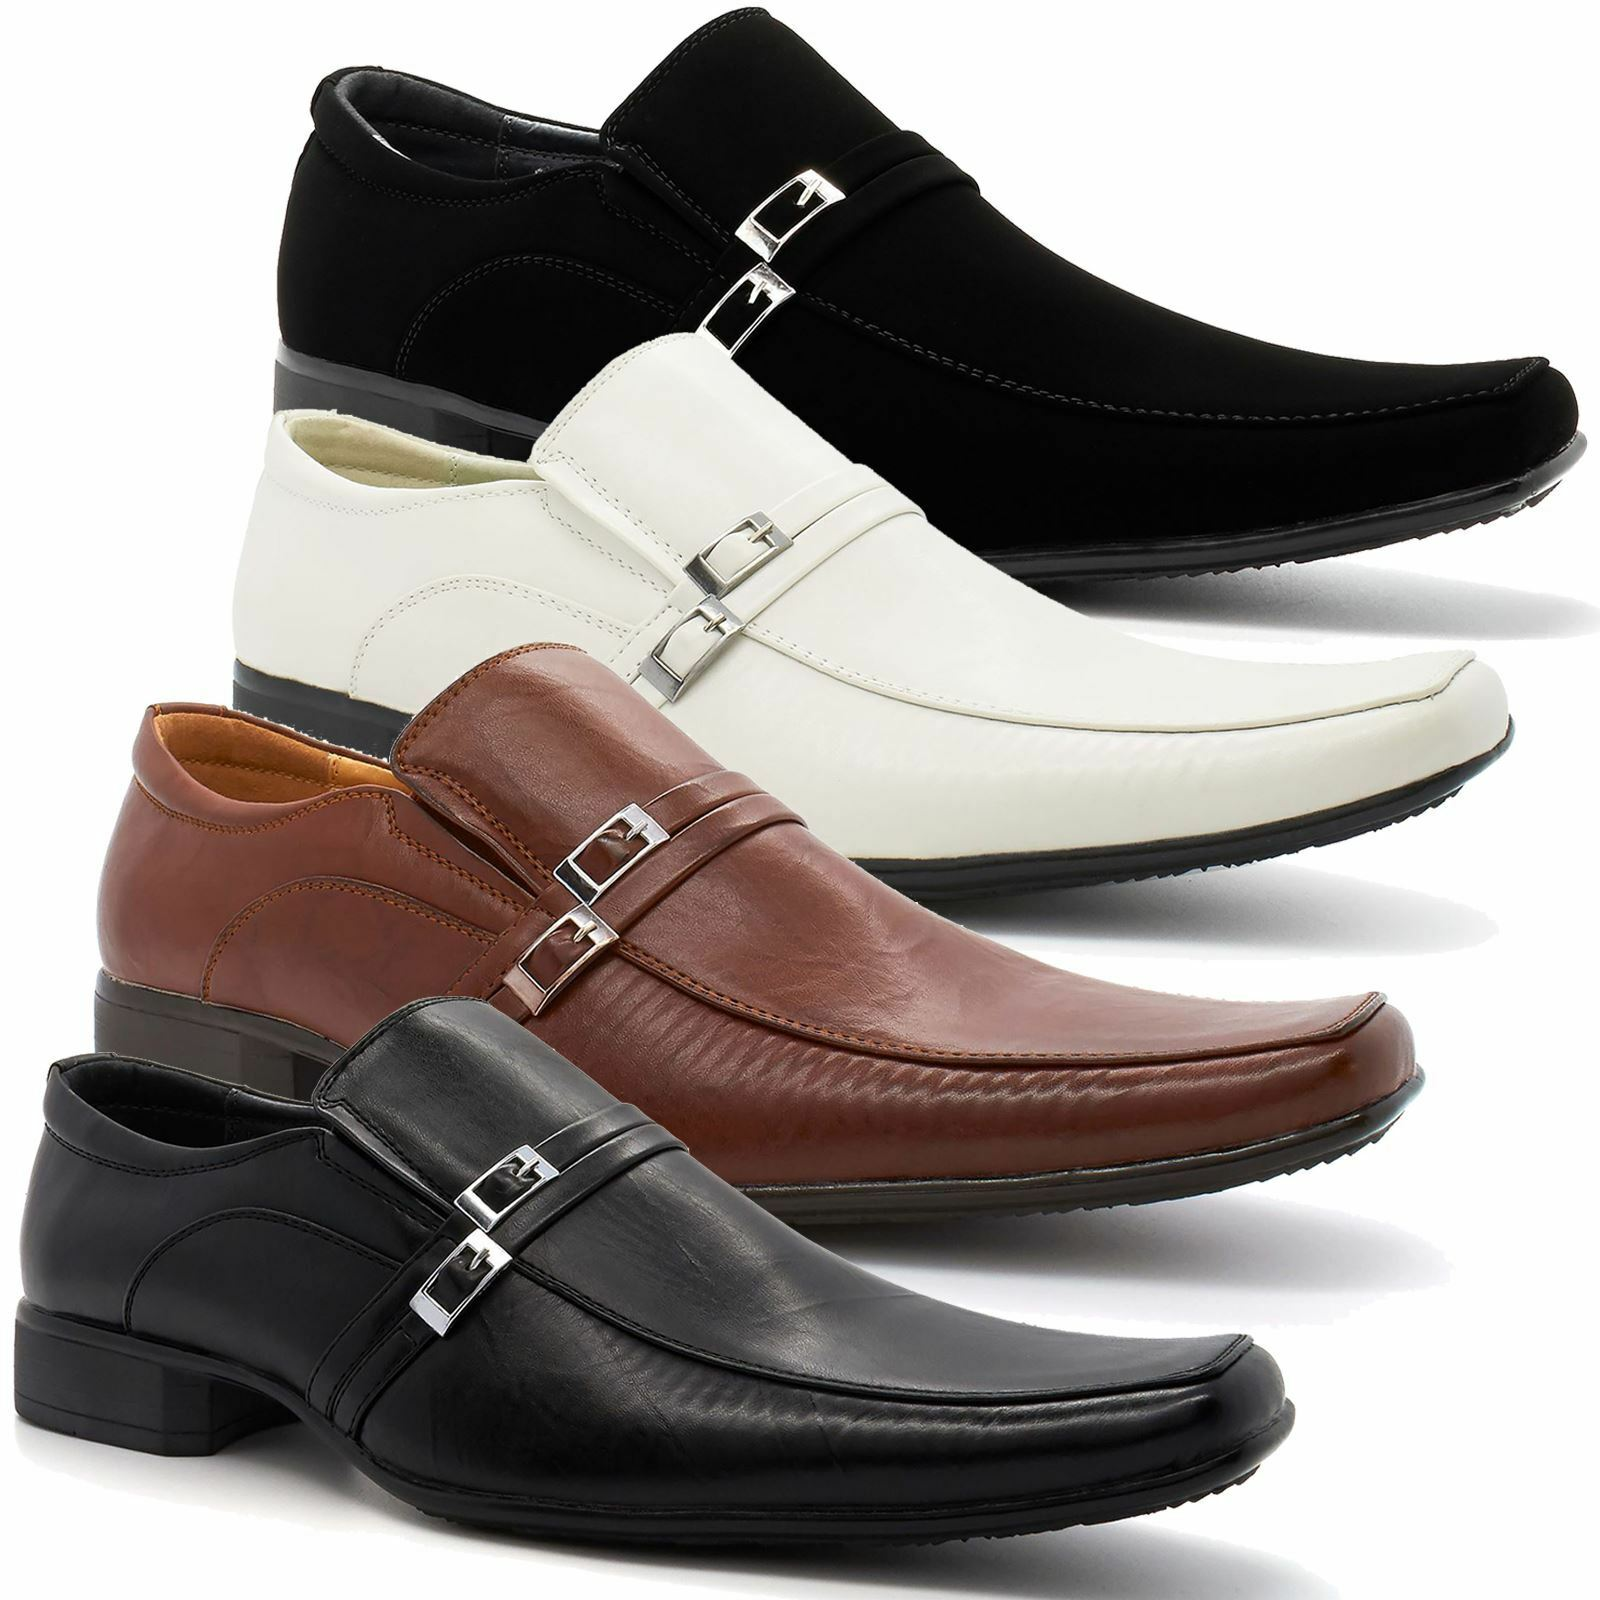 Man/Woman New Mens Formal Italian Style Wedding Office Slip On Shoes Smart Office Wedding UK Sizes 6-11 Great variety Fast delivery Exquisite (processing) processing VW452 b8819b